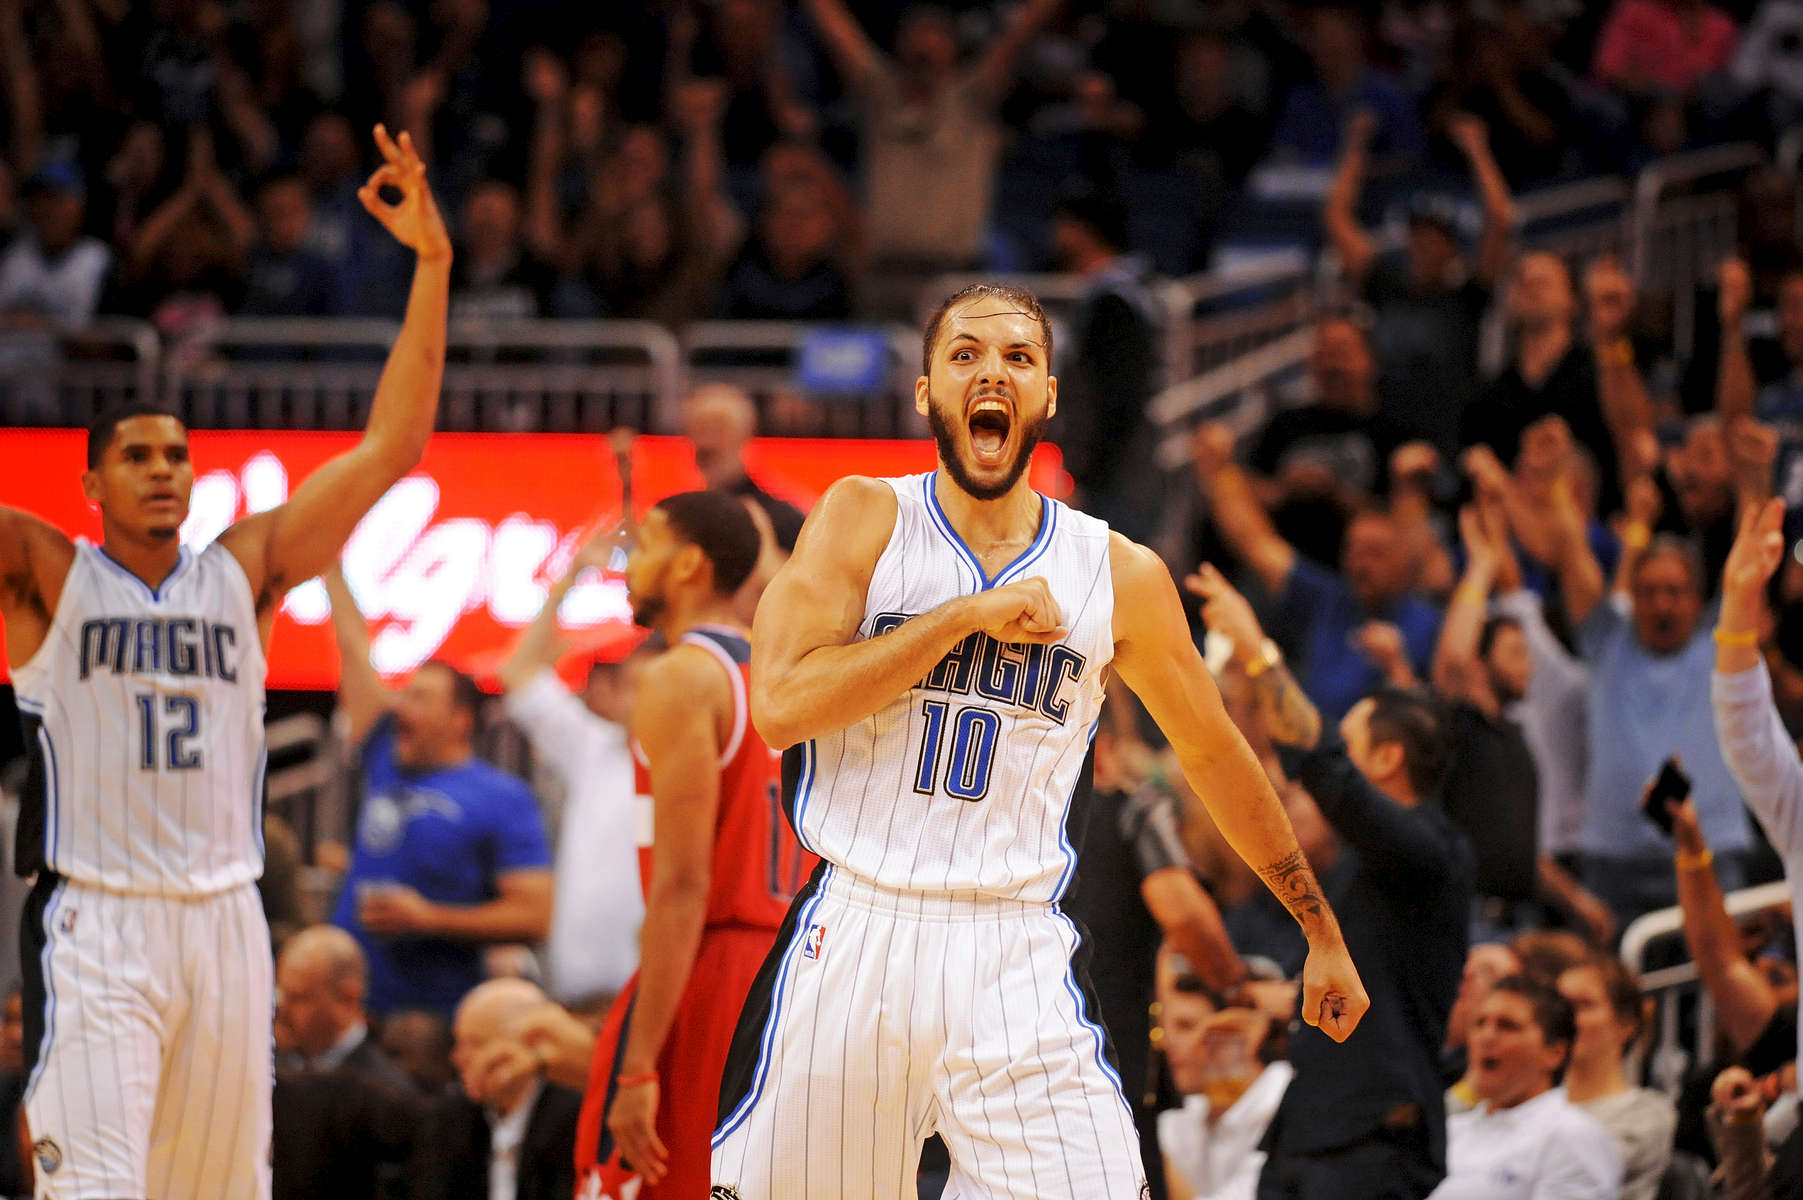 Orlando Magic guard Evan Fournier (10) celebrates after hitting a three-point shot to cut the Washington Wizards' lead to three points late in the fourth quarter as the Wizards beat the Magic 105-98 at Amway Center on Thursday October 30, 2014.